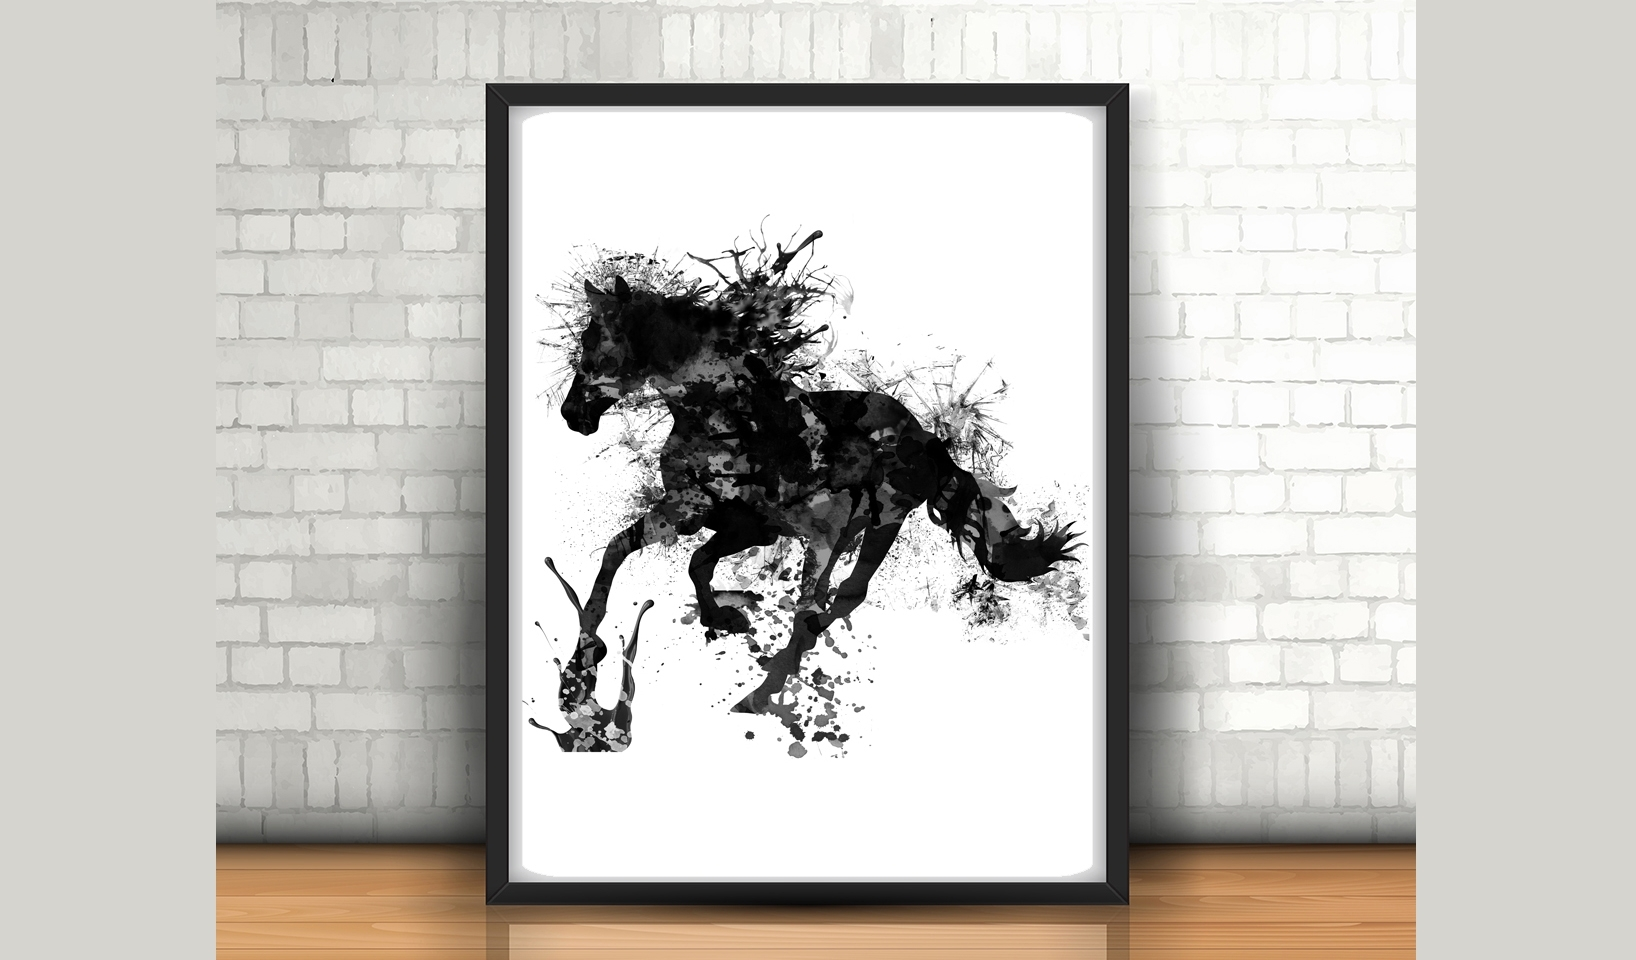 Horse Wall Art – Size 24X36 Inches – H | Design Bundles Inside Most Recently Released Horse Wall Art (View 4 of 15)